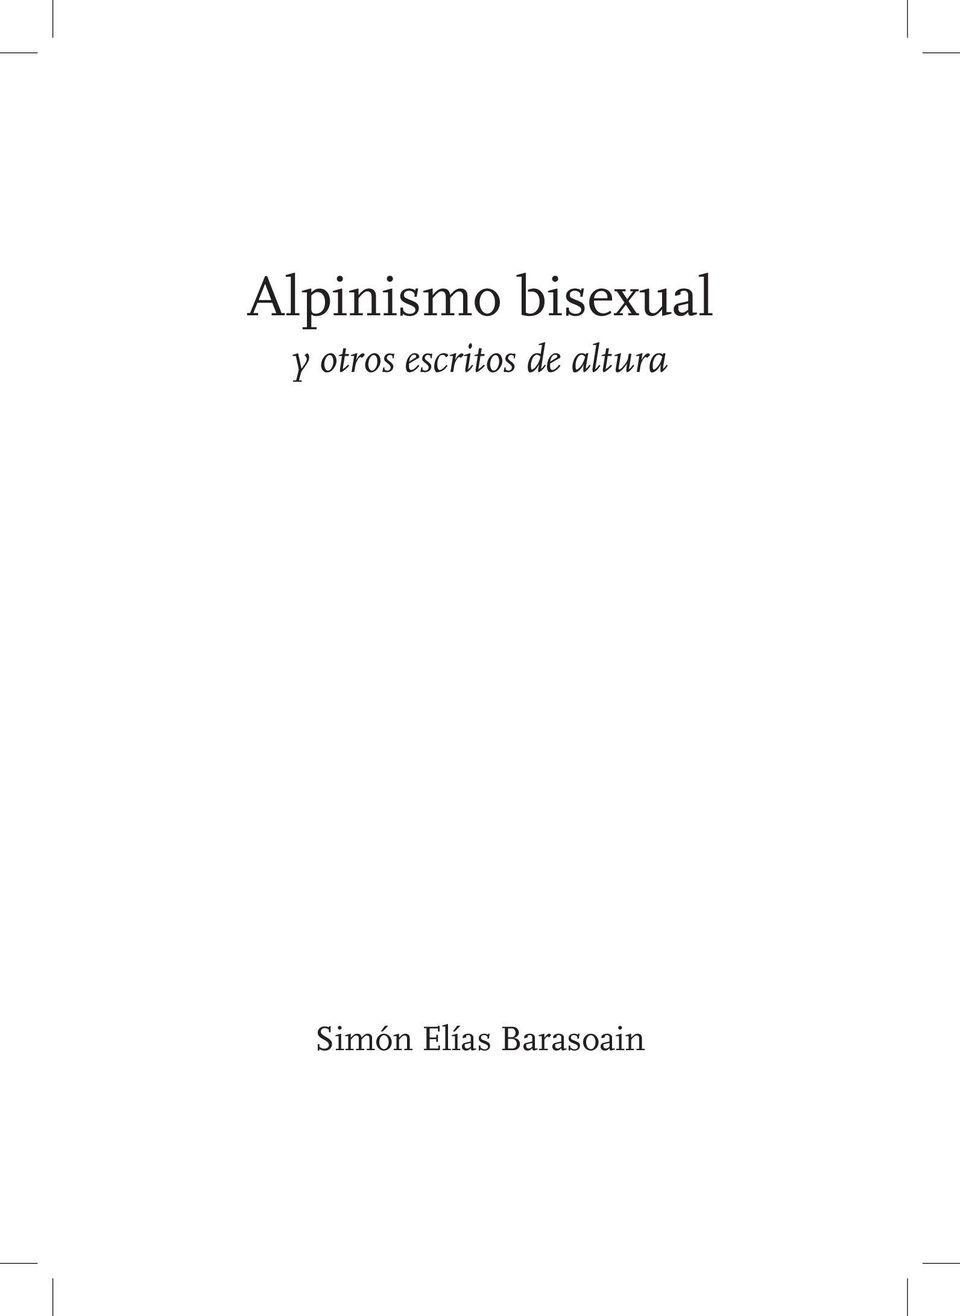 Alpinismo bisexual simon